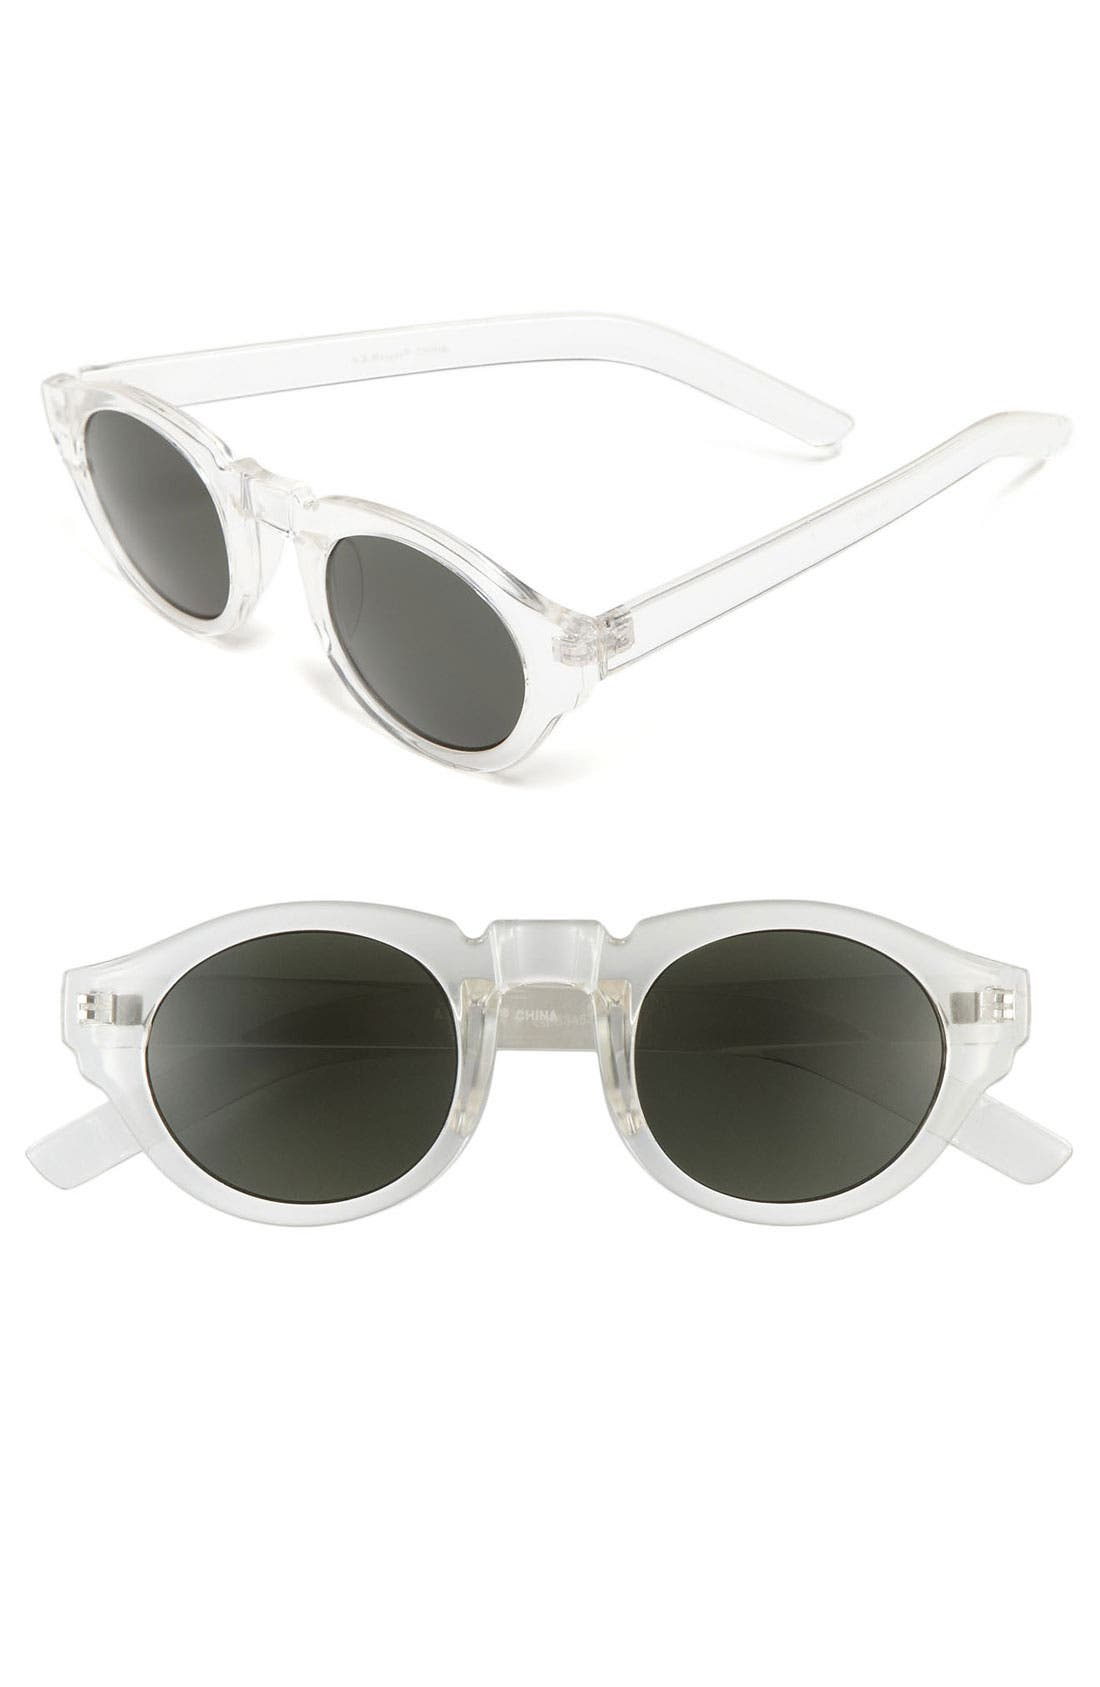 Main Image - A.J. Morgan 'Astro' Retro Sunglasses